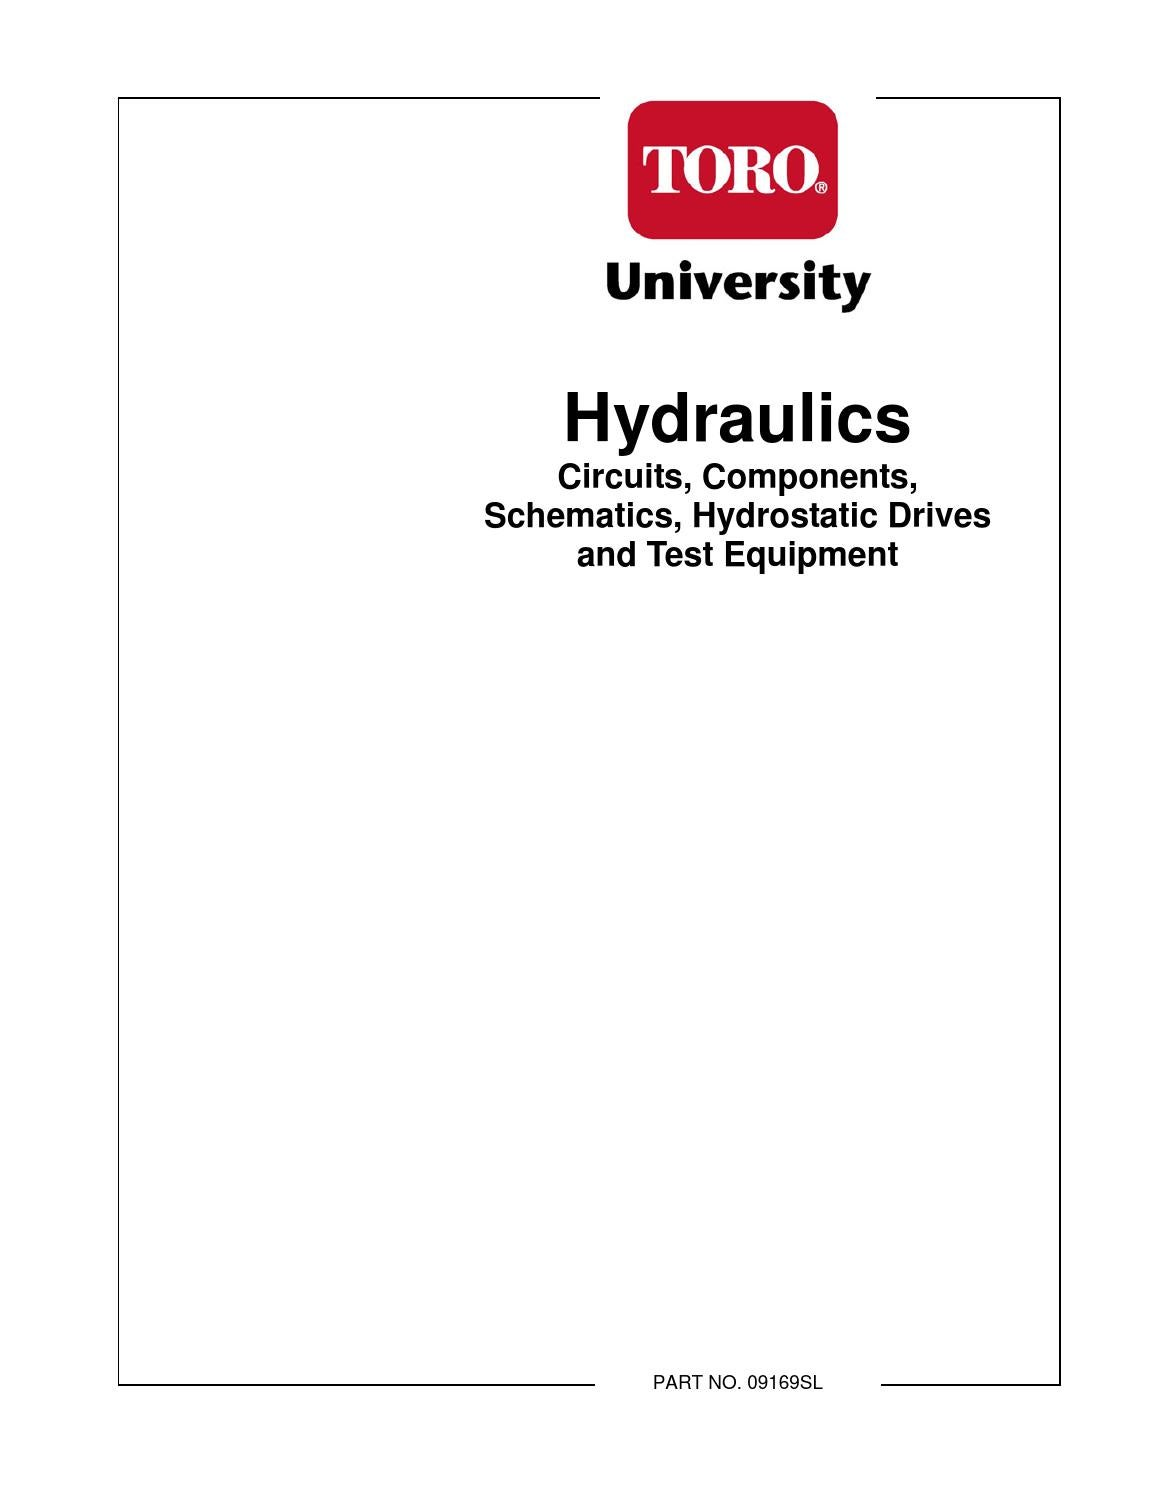 Toro Hydraulic Course By Lostinthewoods Issuu Basic System Diagram Troubleshooting Tips For